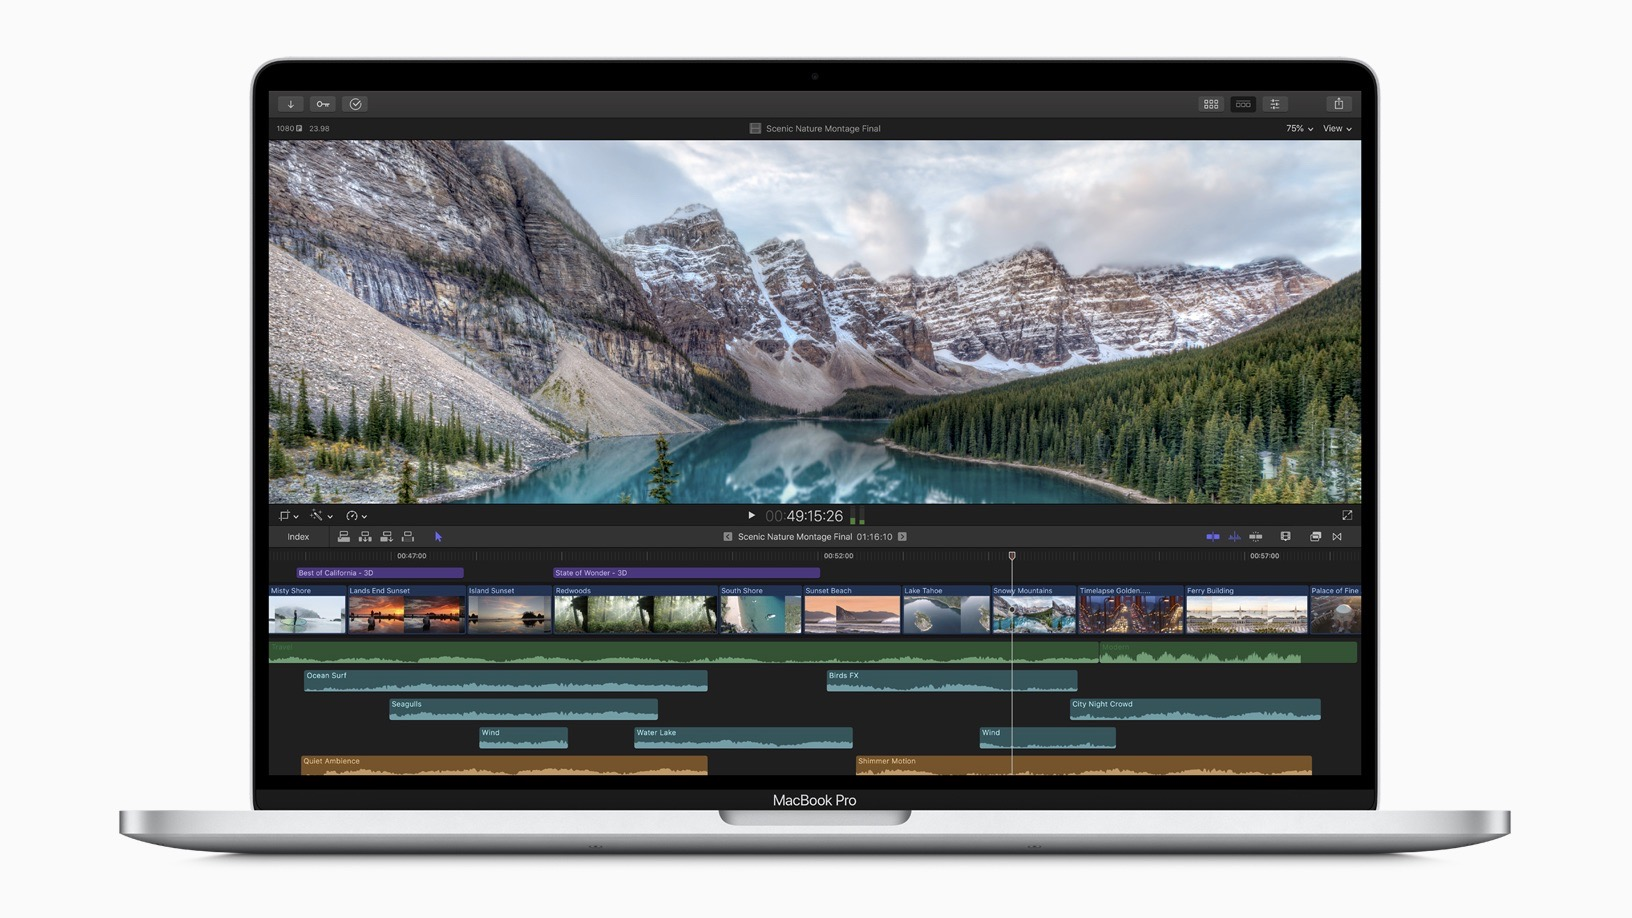 Macbook pro not connecting to wifi